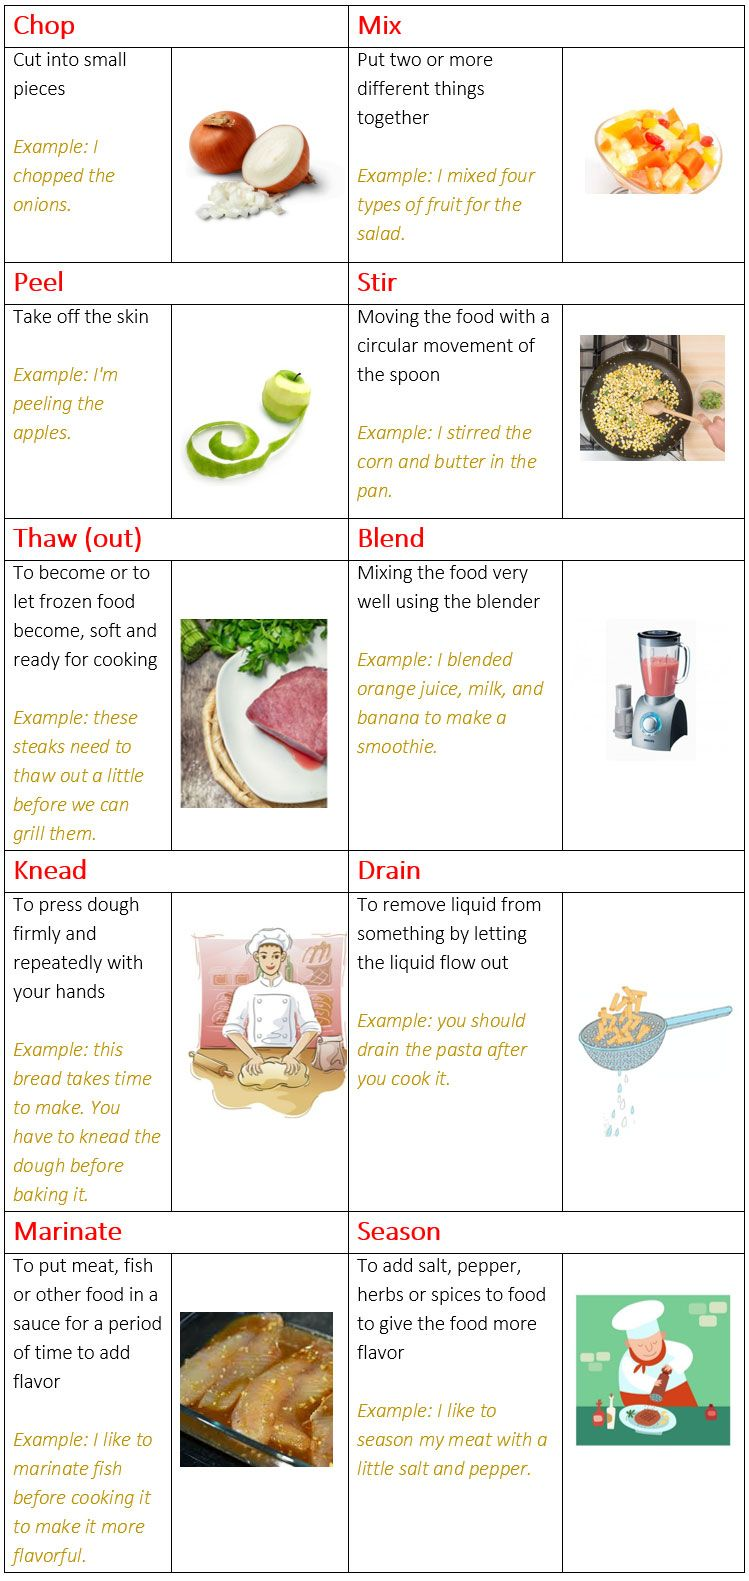 crockery and flatware infographic|this could be useful for low